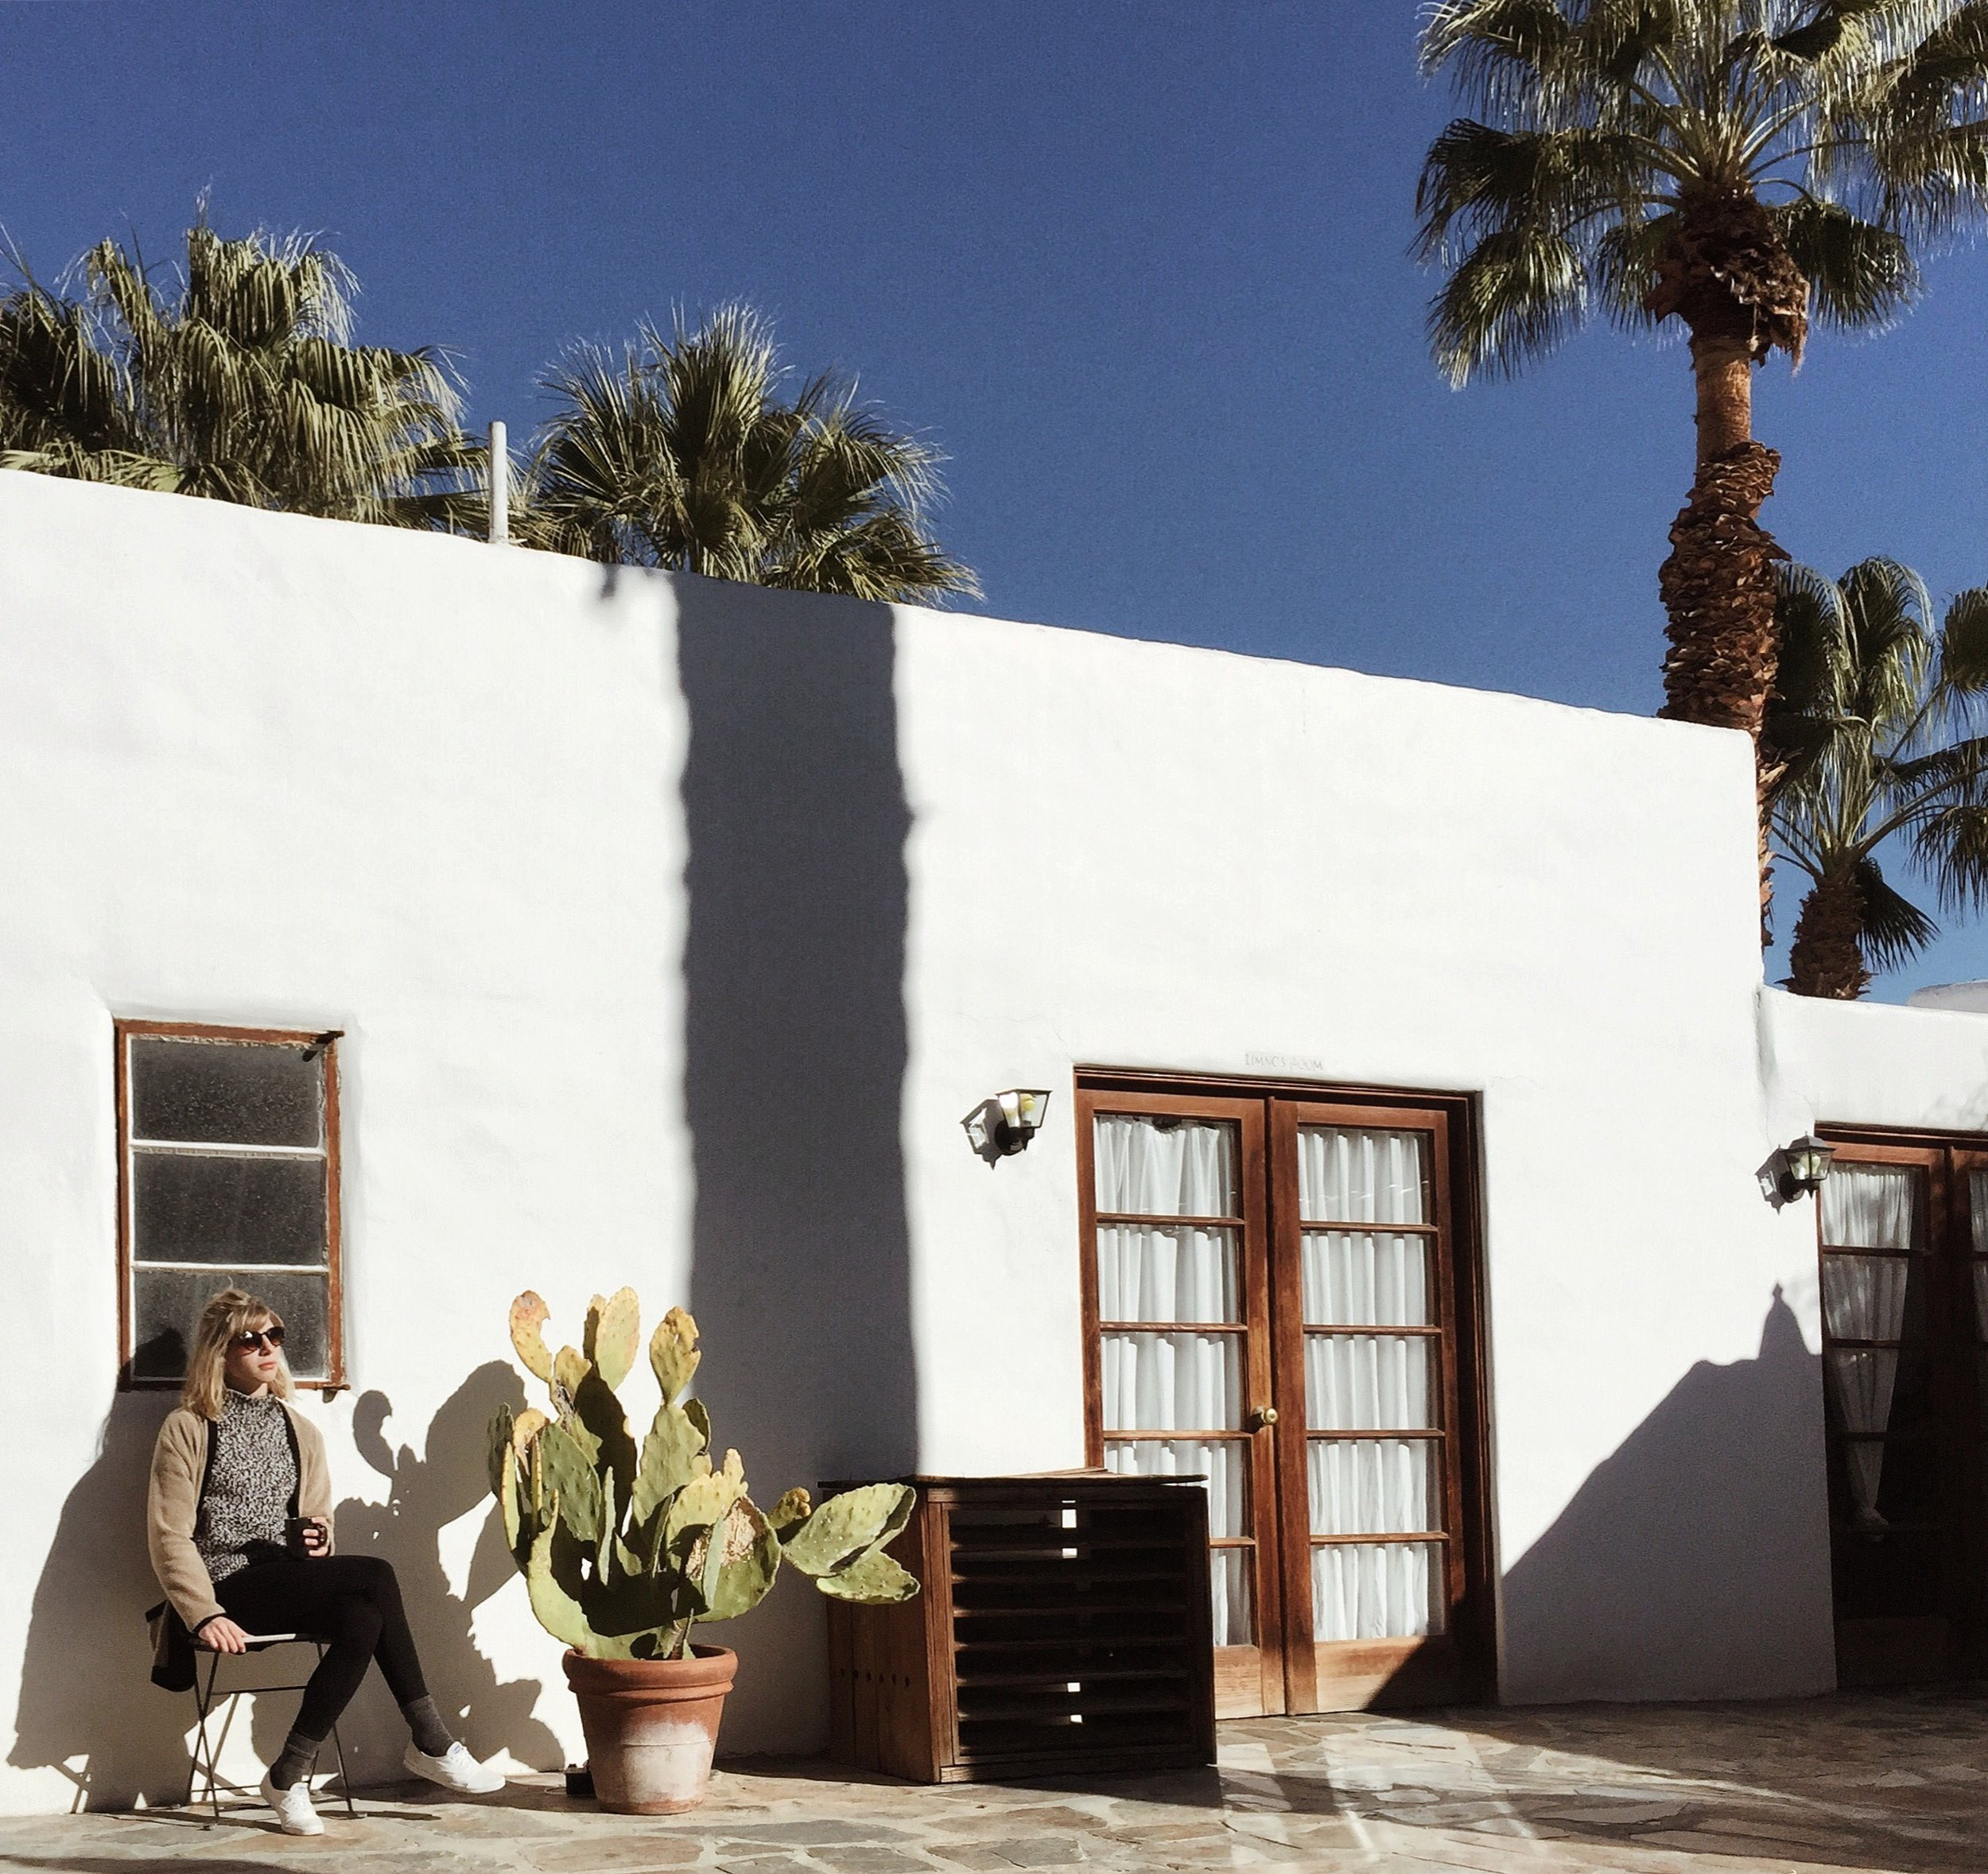 Luxurious, sun-drenched morning in Palm Springs